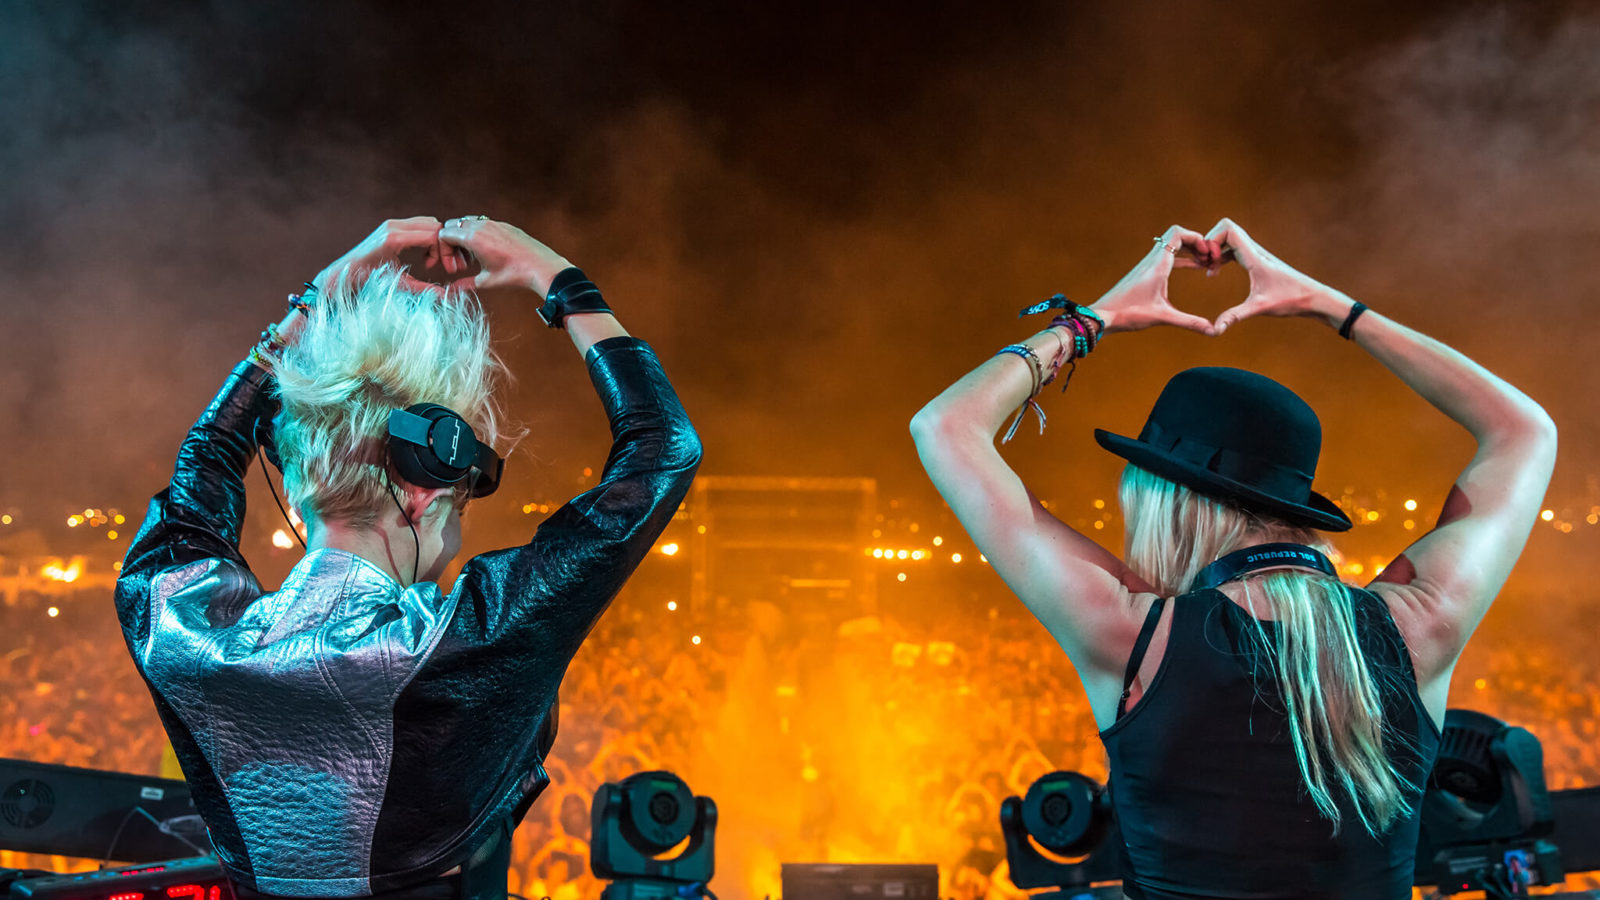 NERVO performing at Sun City Music Festival 2015